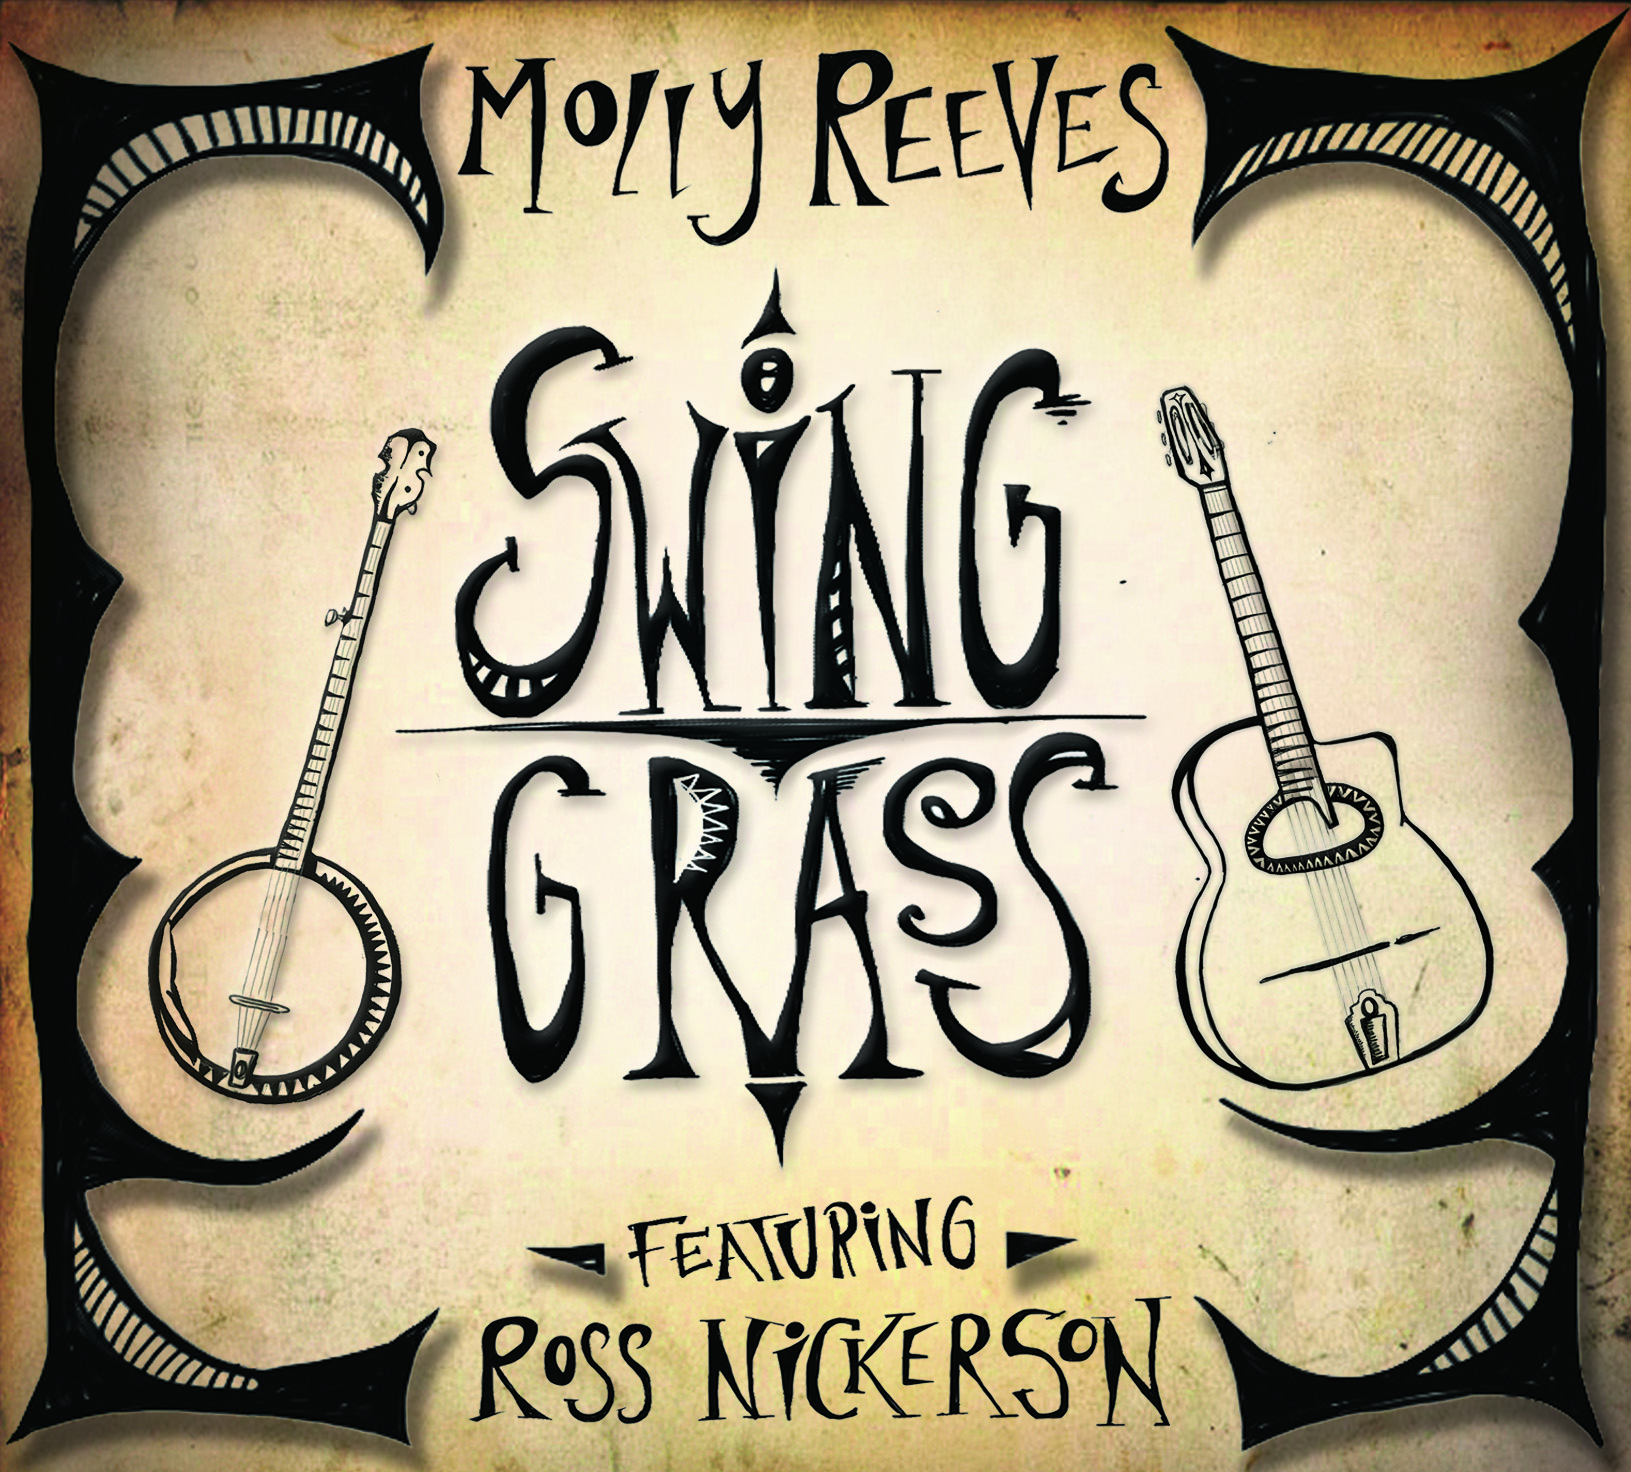 swing grass, album